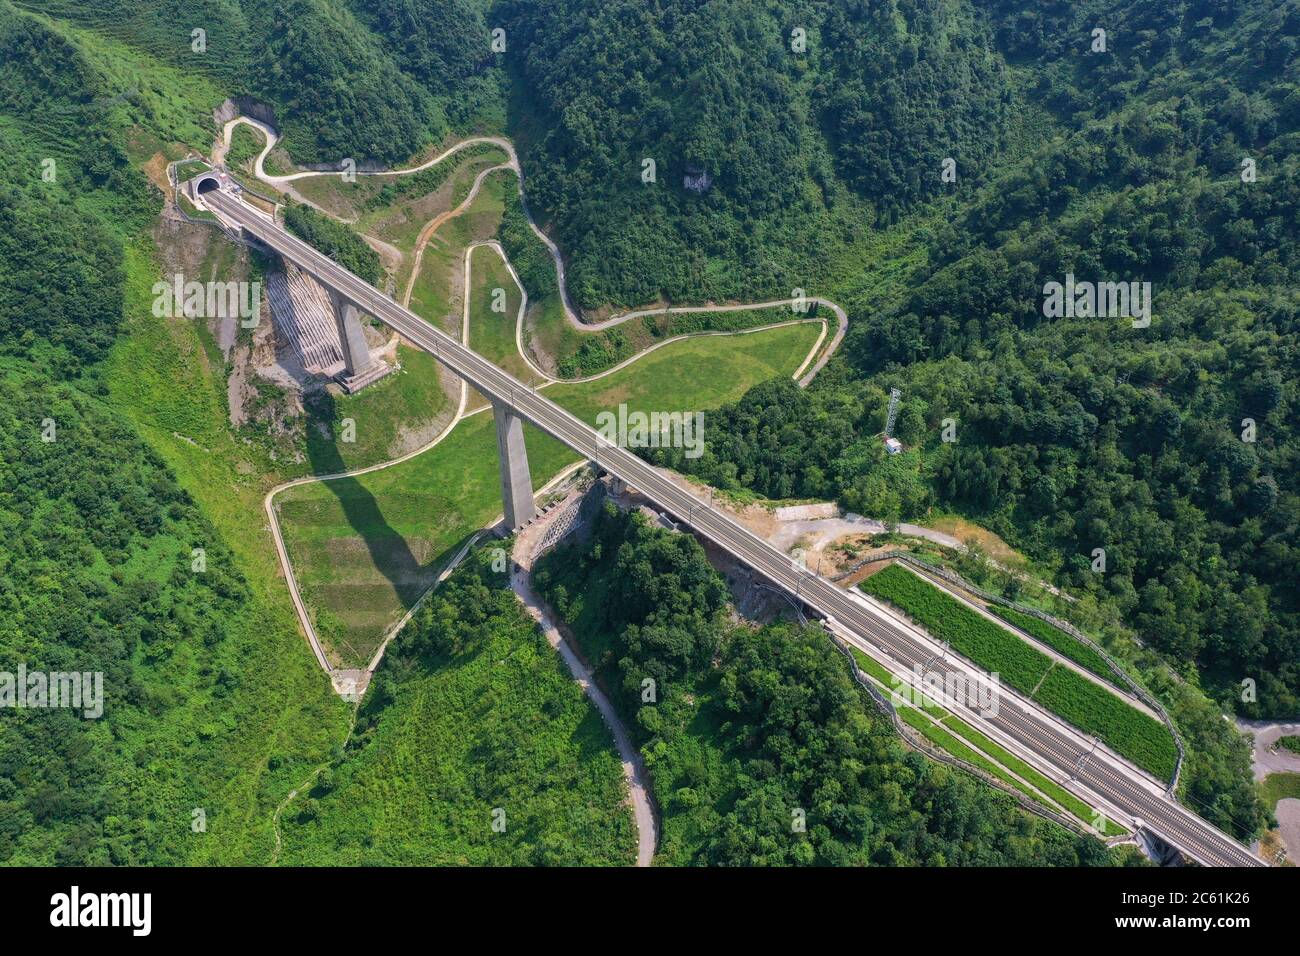 Liupanshui. 6th July, 2020. Aerial photo taken on July 6, 2020 shows a railway bridge along the Anshun-Liupanshui railway in southwest China's Guizhou Province. The Anshun-Liupanshui intercity railway, with a designed speed of 250 km per hour, is being prepared for opening. The railway will shorten the travel time between Guiyang and Liupanshui from the current 3.5 hours to about 1 hour, and Liupanshui City will be fully connected with the national high-speed rail network. Credit: Liu Xu/Xinhua/Alamy Live News Stock Photo